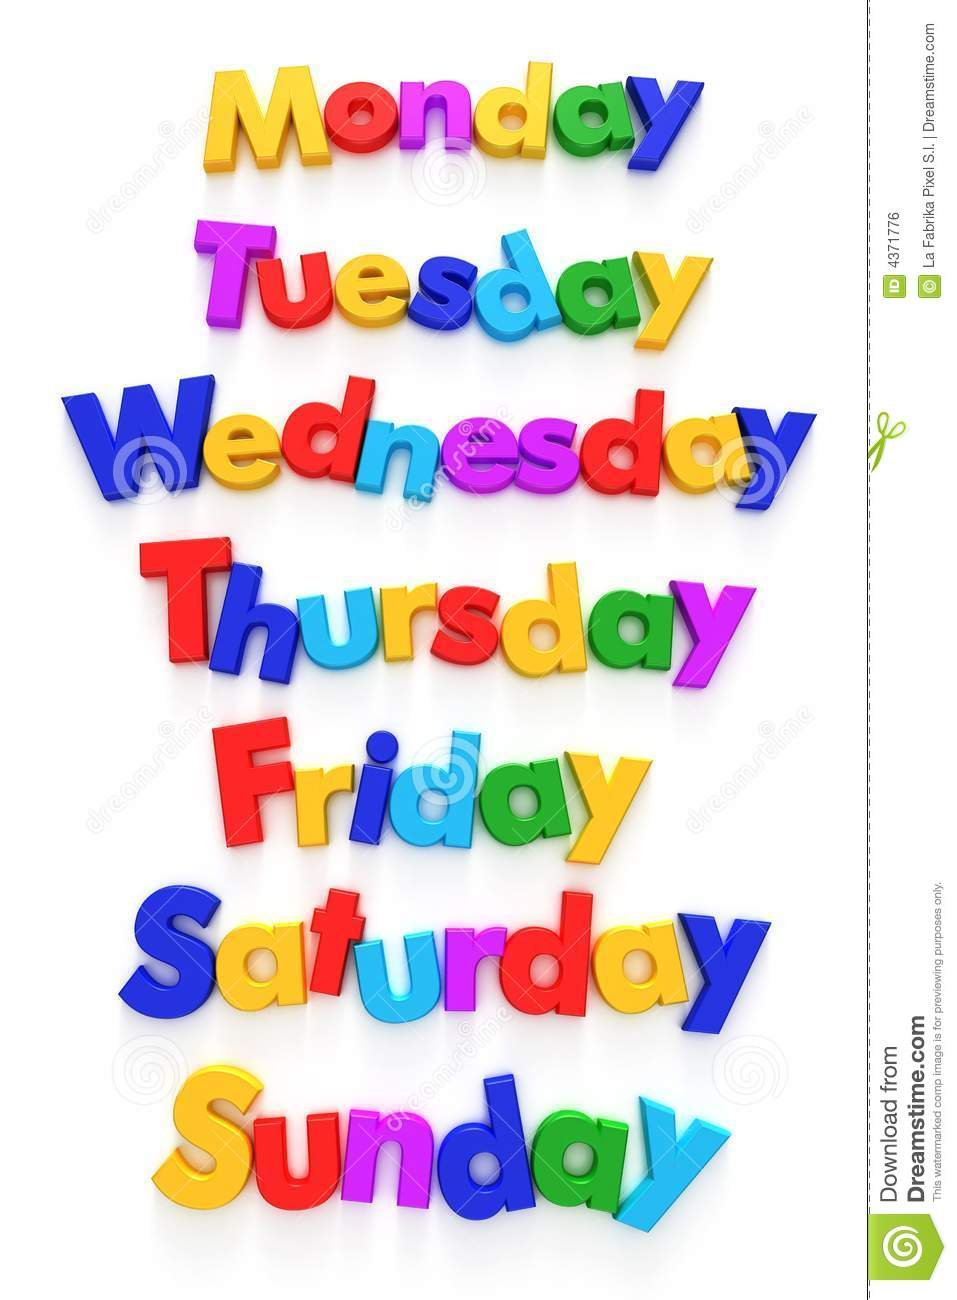 Days Of The Week In Letter Magnets Royalty Free Stock Image.